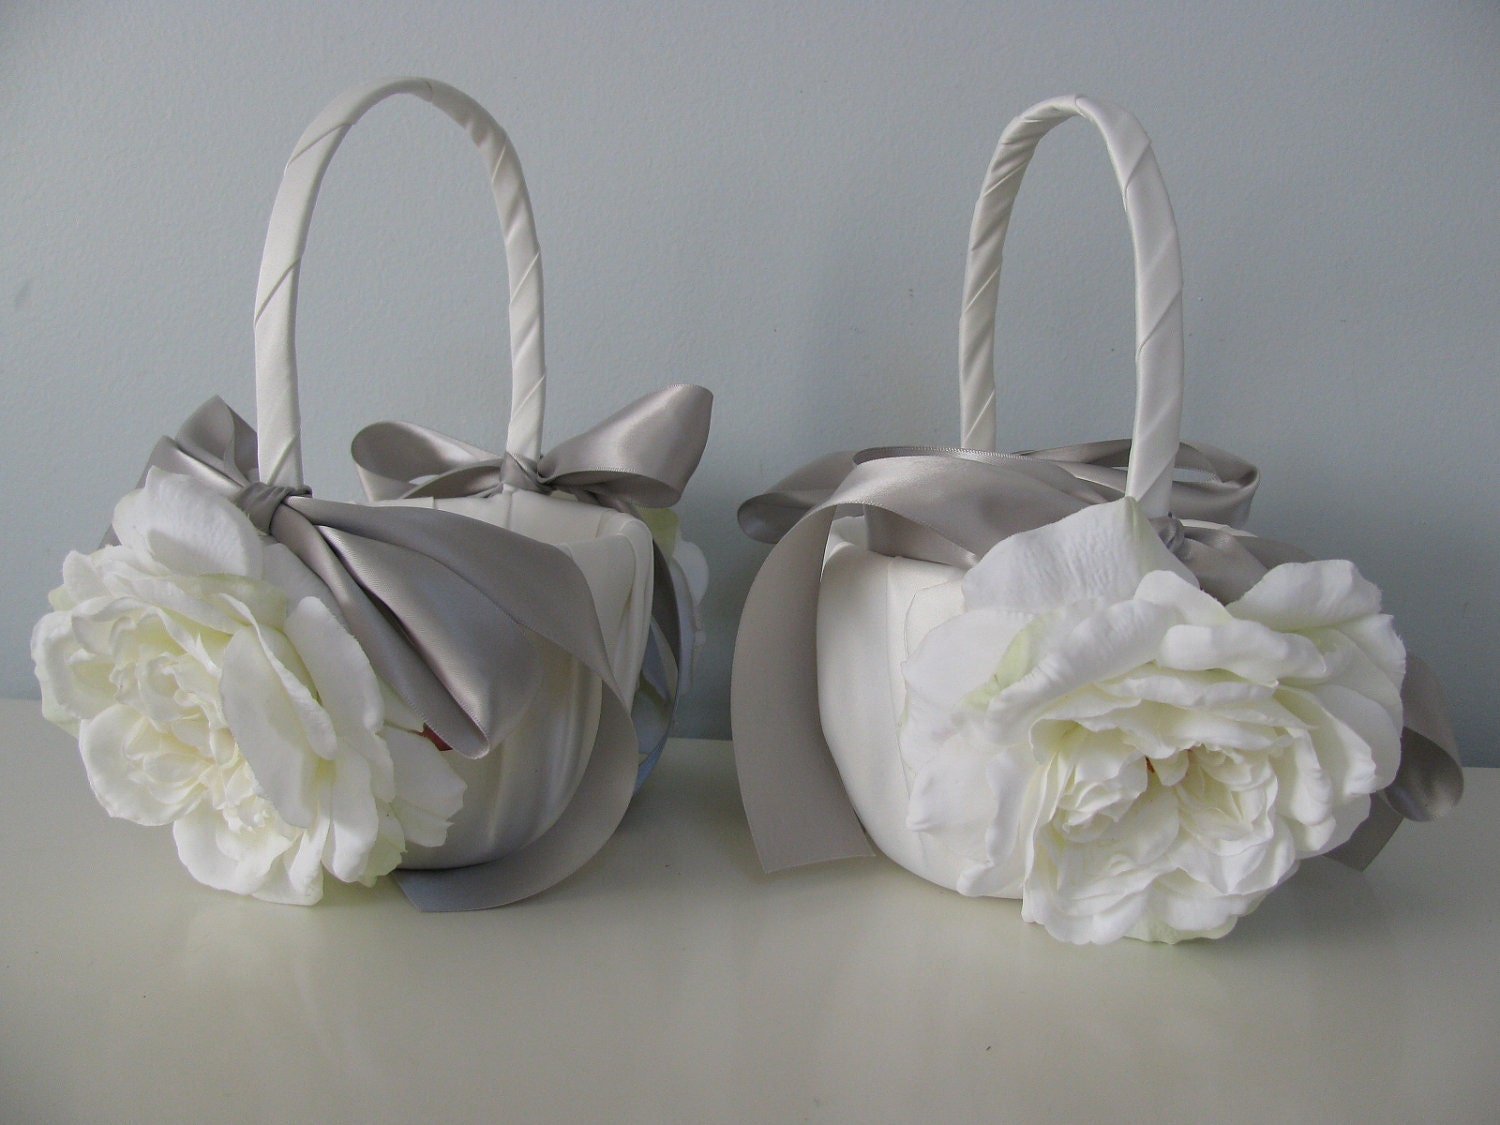 Flower Girl Basket Gray : Satin flower girl baskets set of shown ivory with open